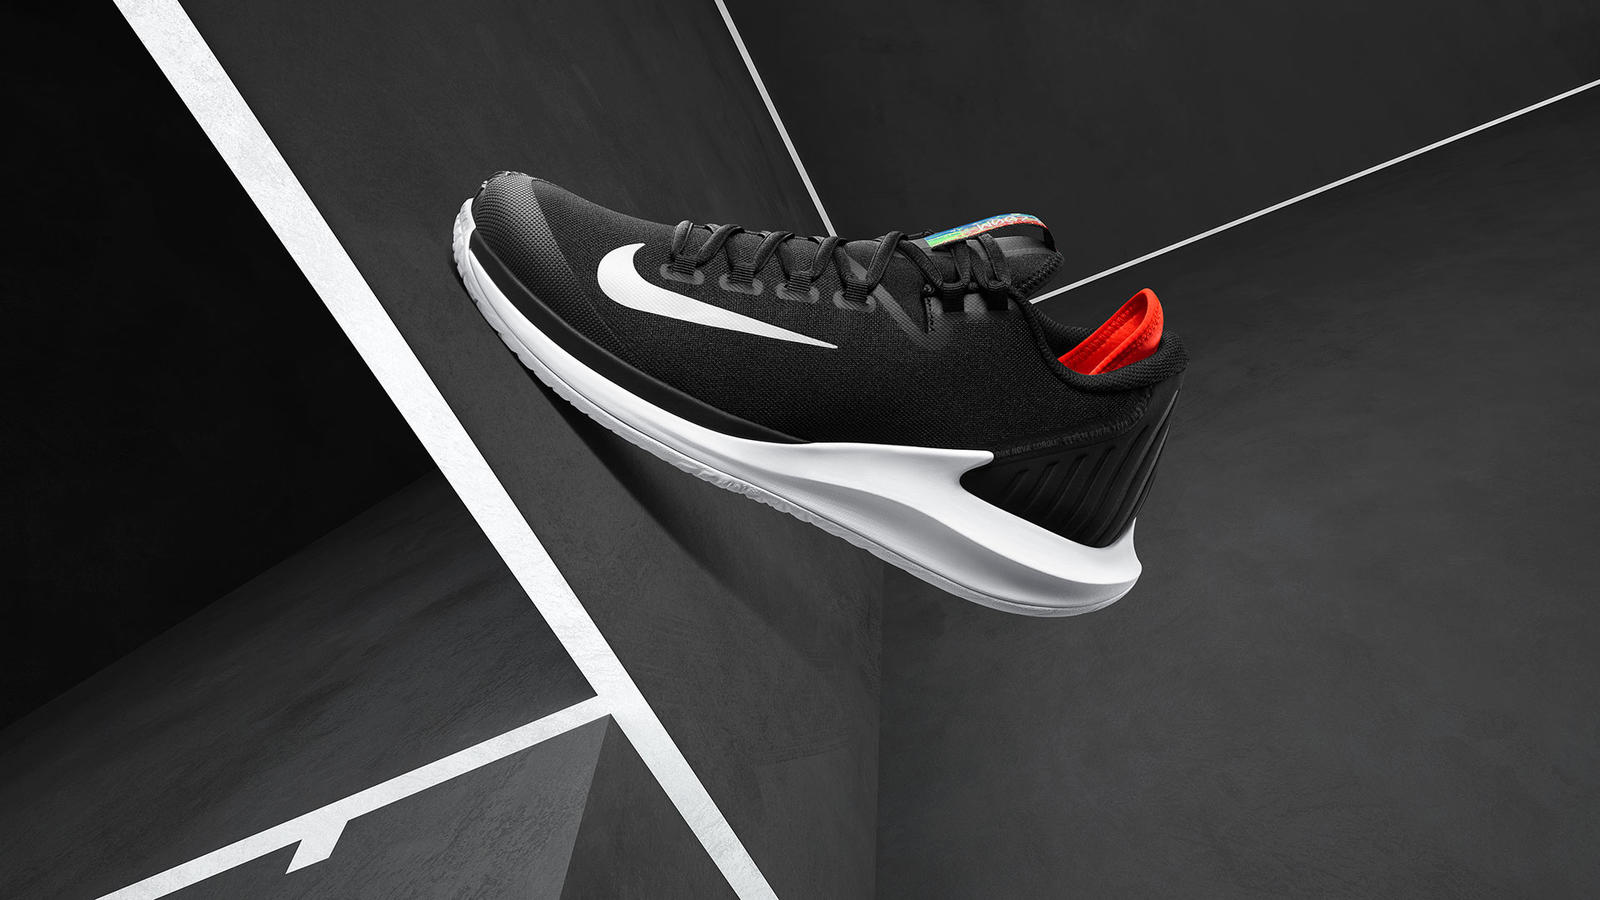 Zero Doubt Nikecourt S Newest Shoe Transitions Tennis Into Its New Era Nike News